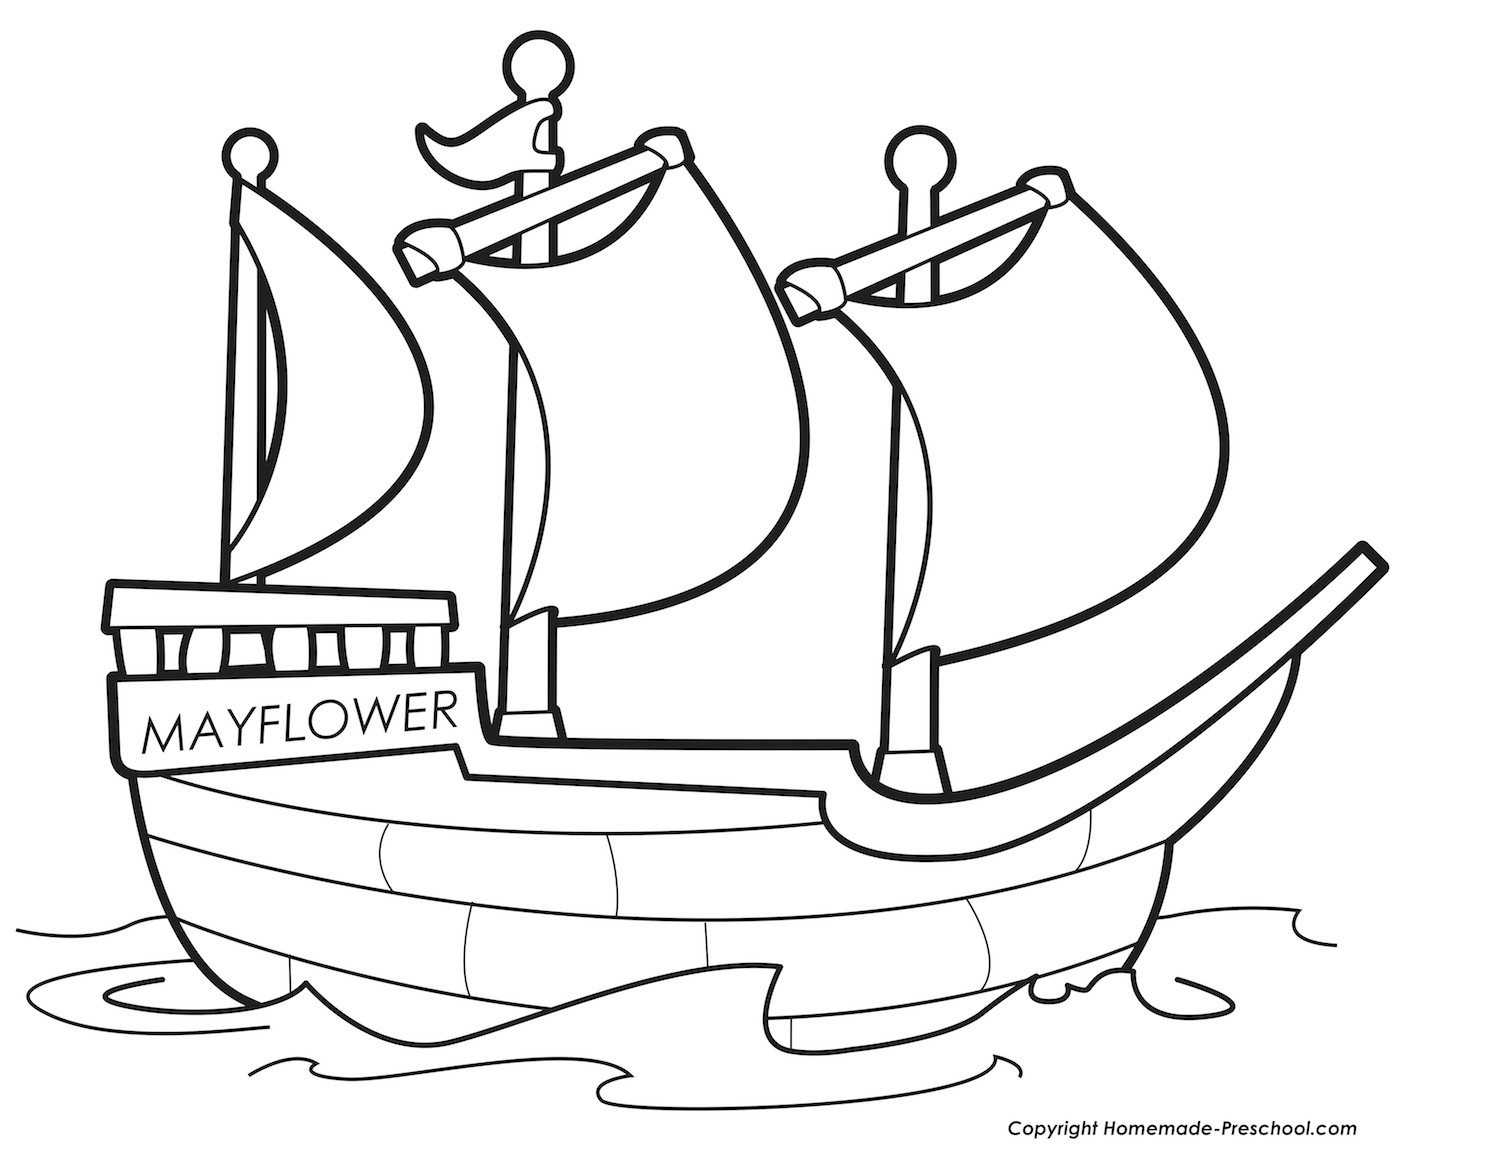 1500x1159 Mayflower Coloring Page Fresh Colouring In Humorous Outstanding